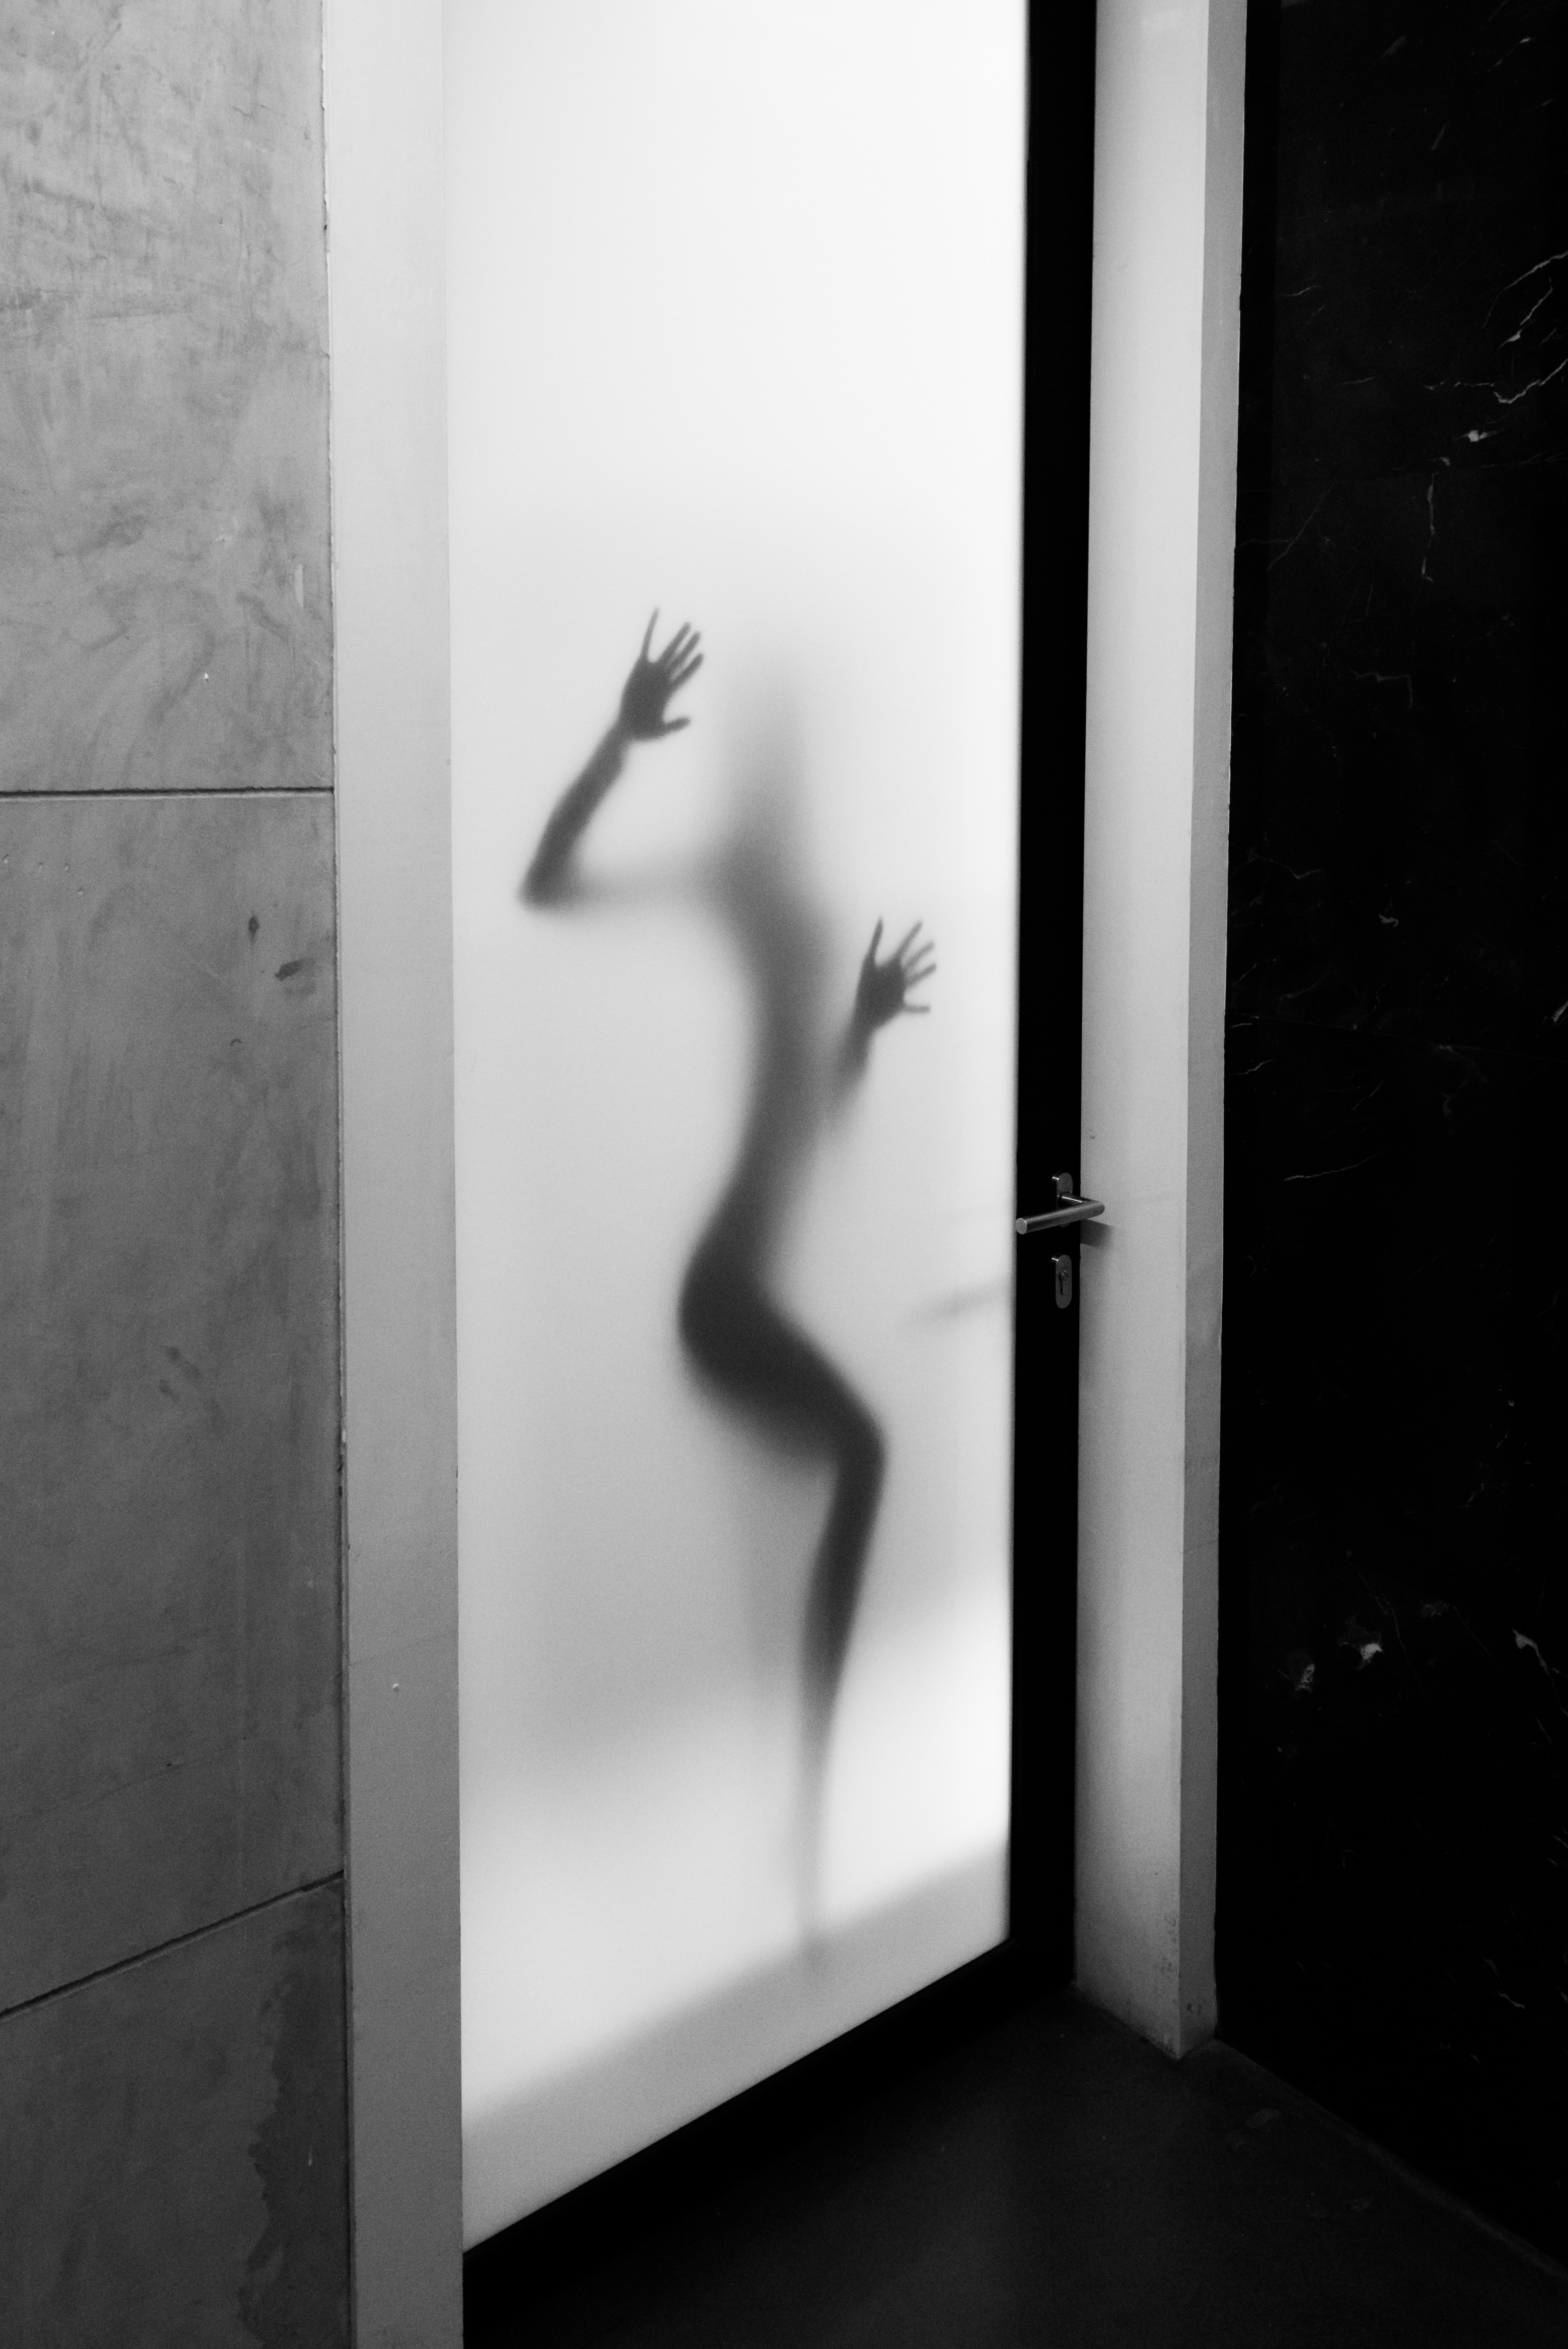 The silhouette of a woman behind frosted glass